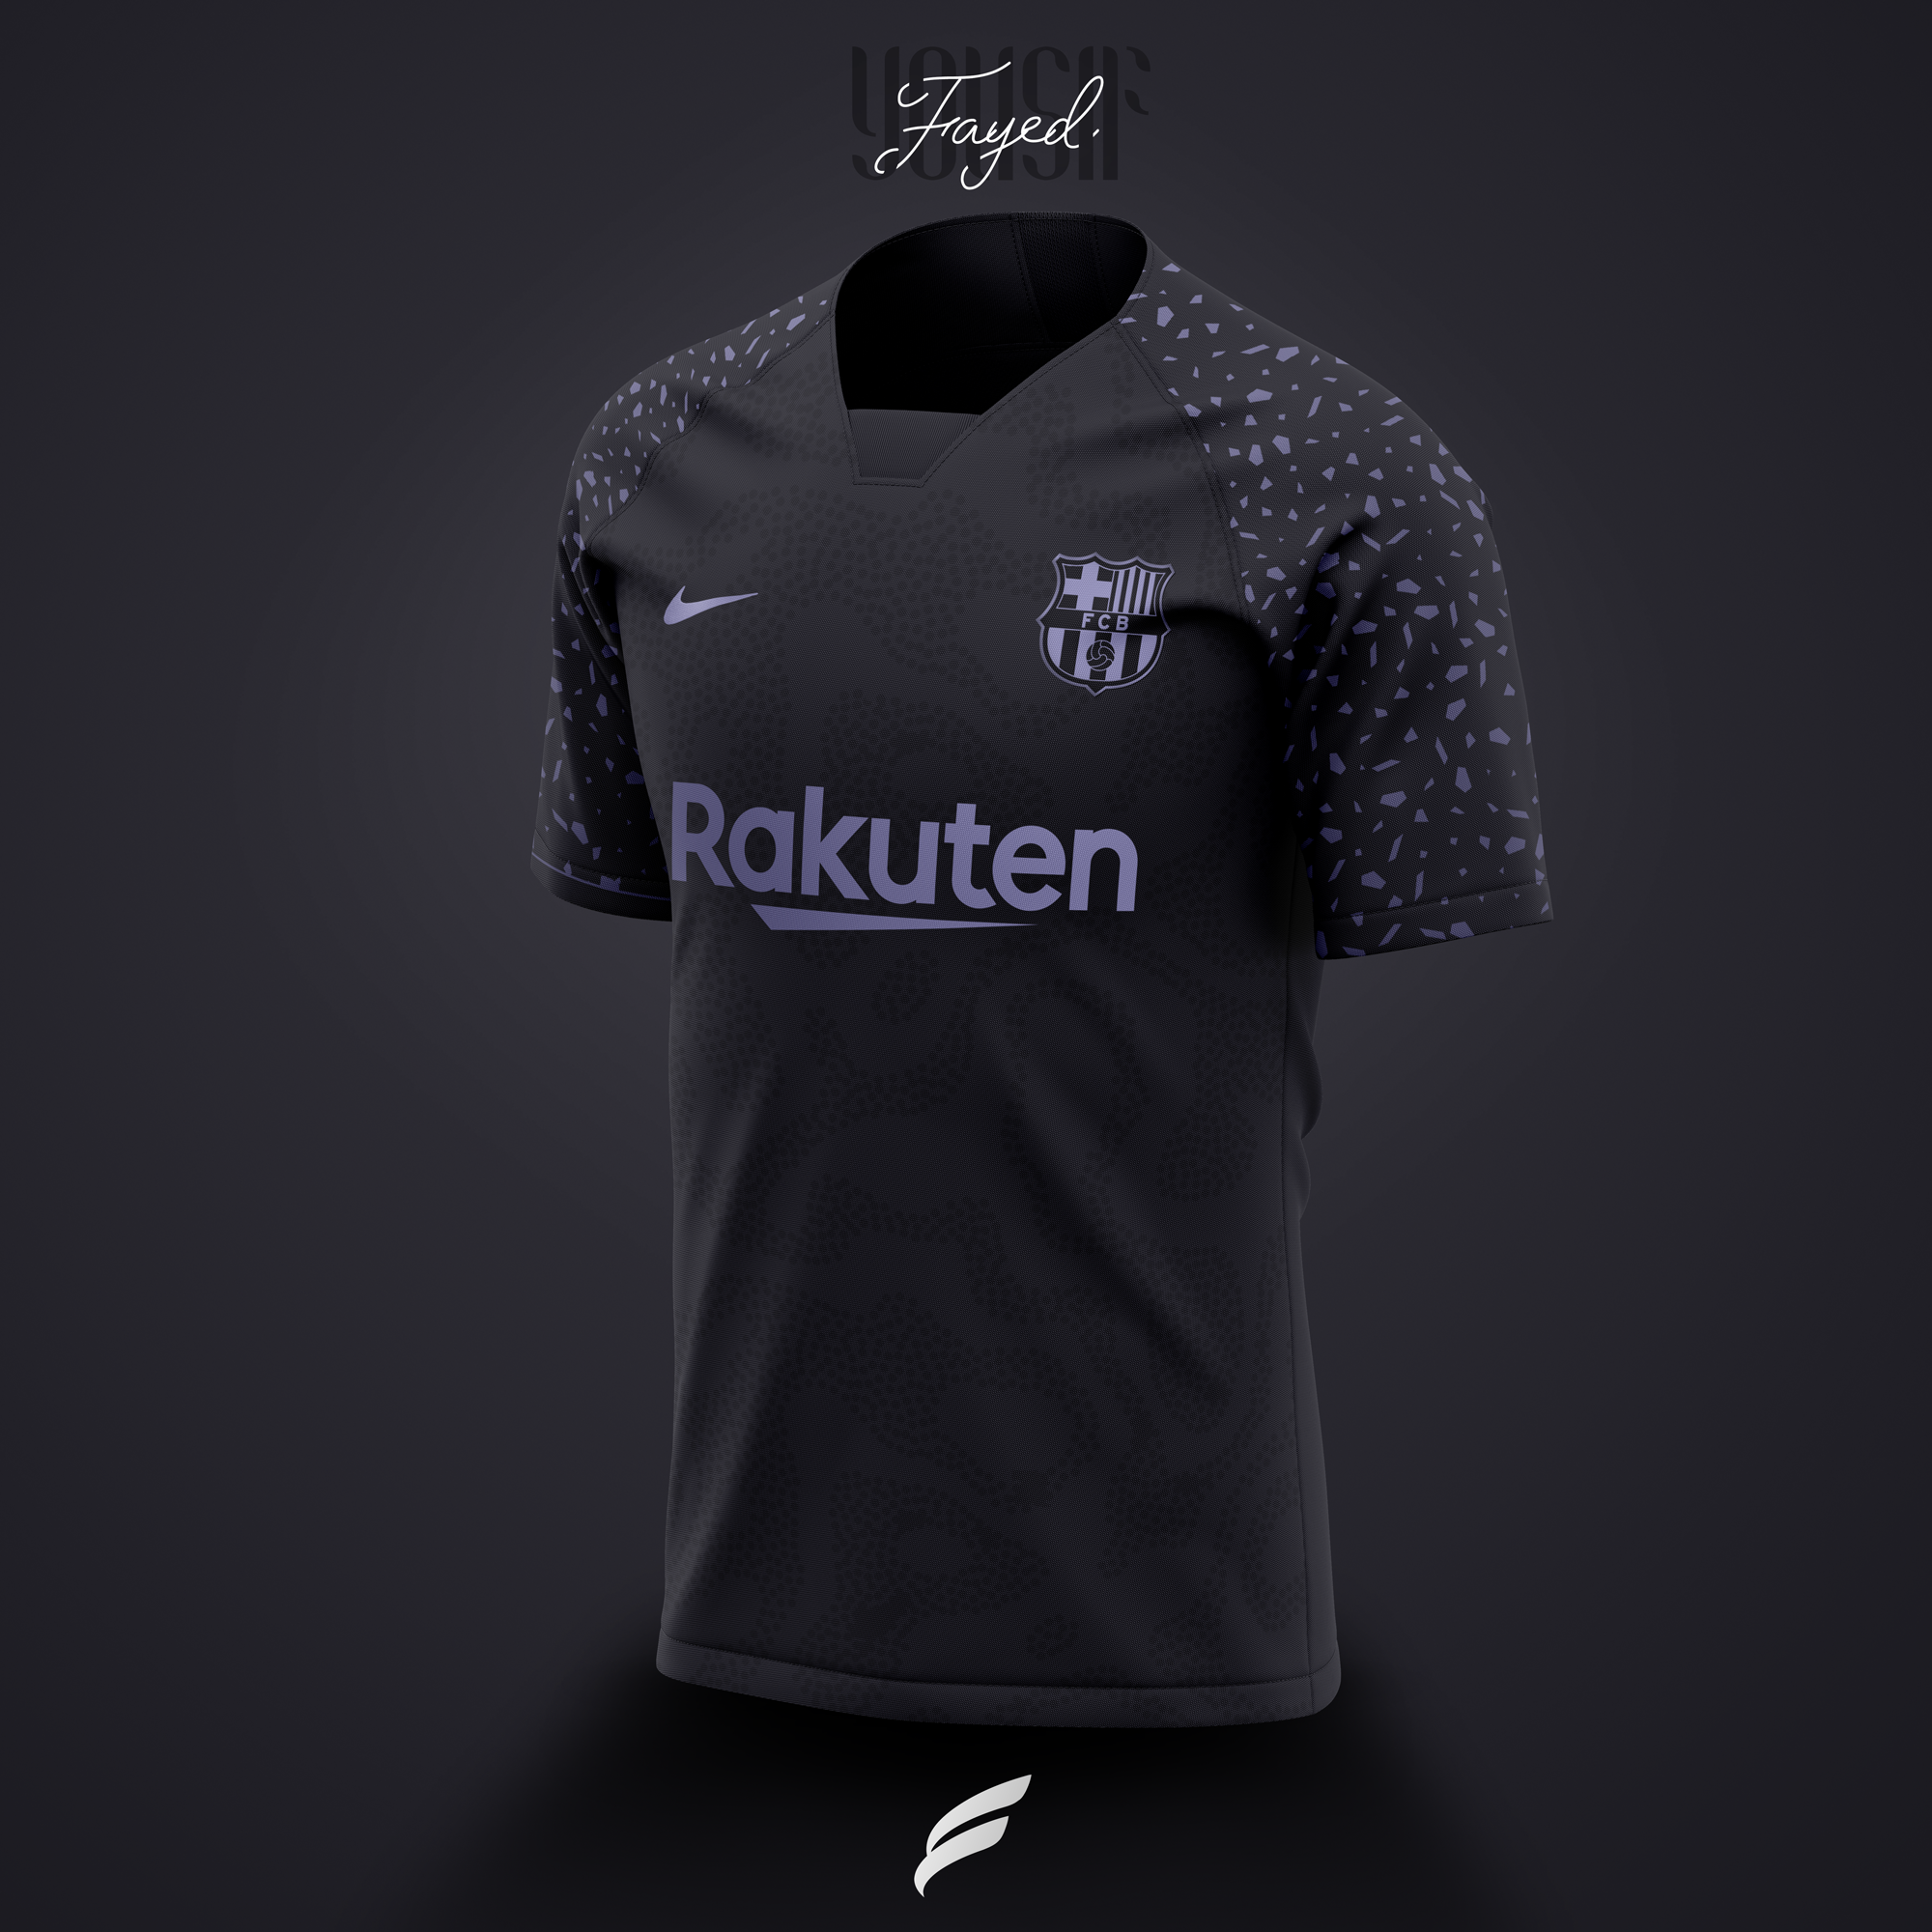 fc barcelona 21 22 third kit leaked fc barcelona 21 22 third kit leaked